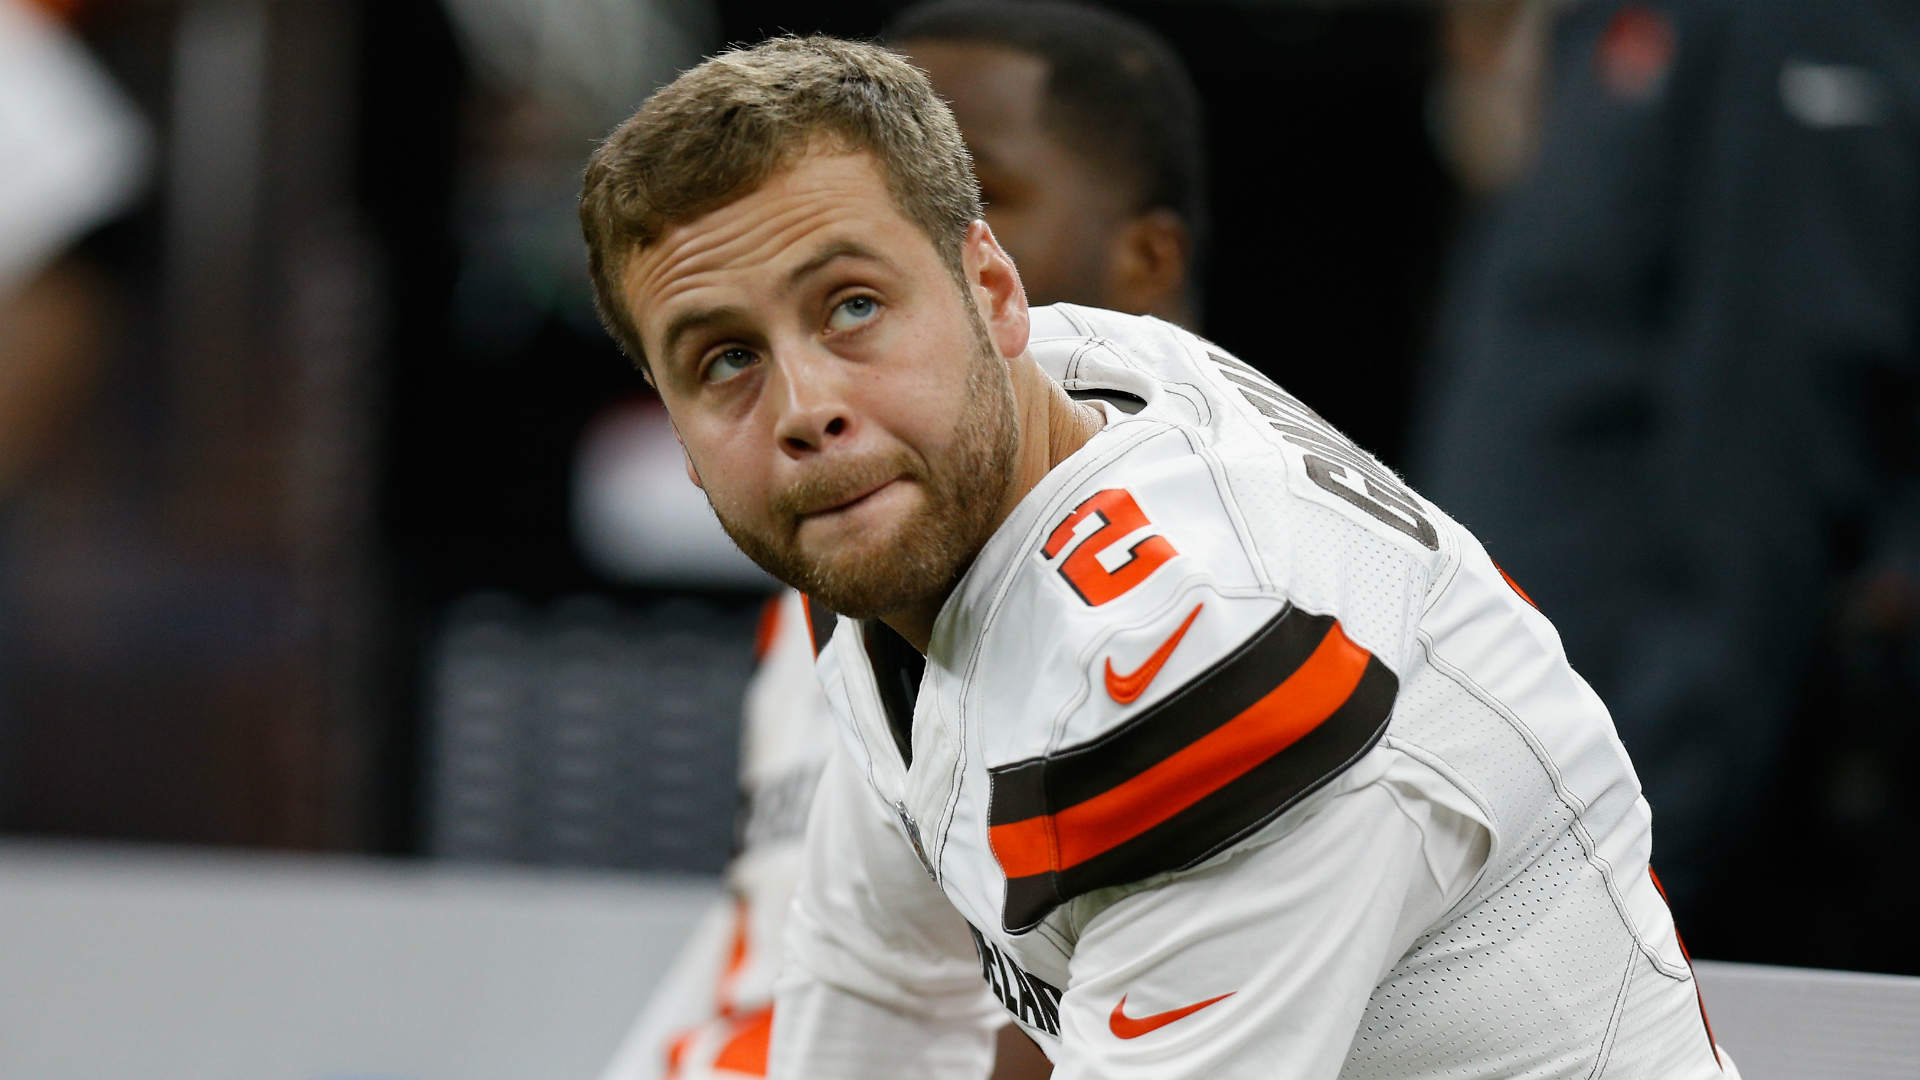 Browns Zane Gonzalez misses four kicks in heartbreaking loss to Saints